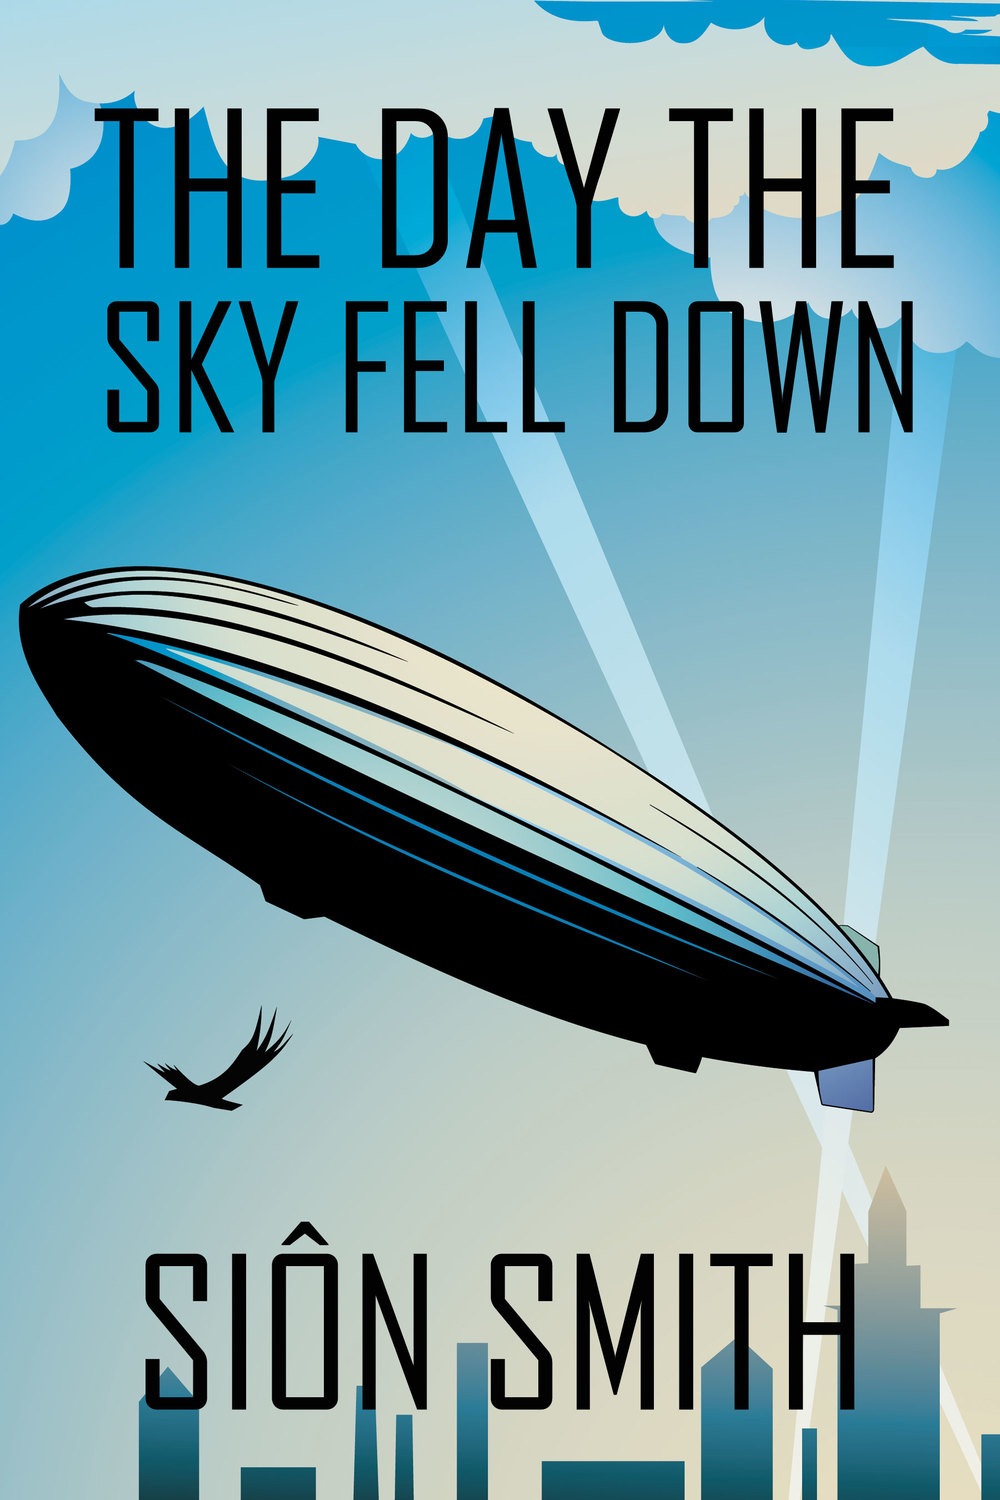 the-day-the-sky-fell-down-sion-smith